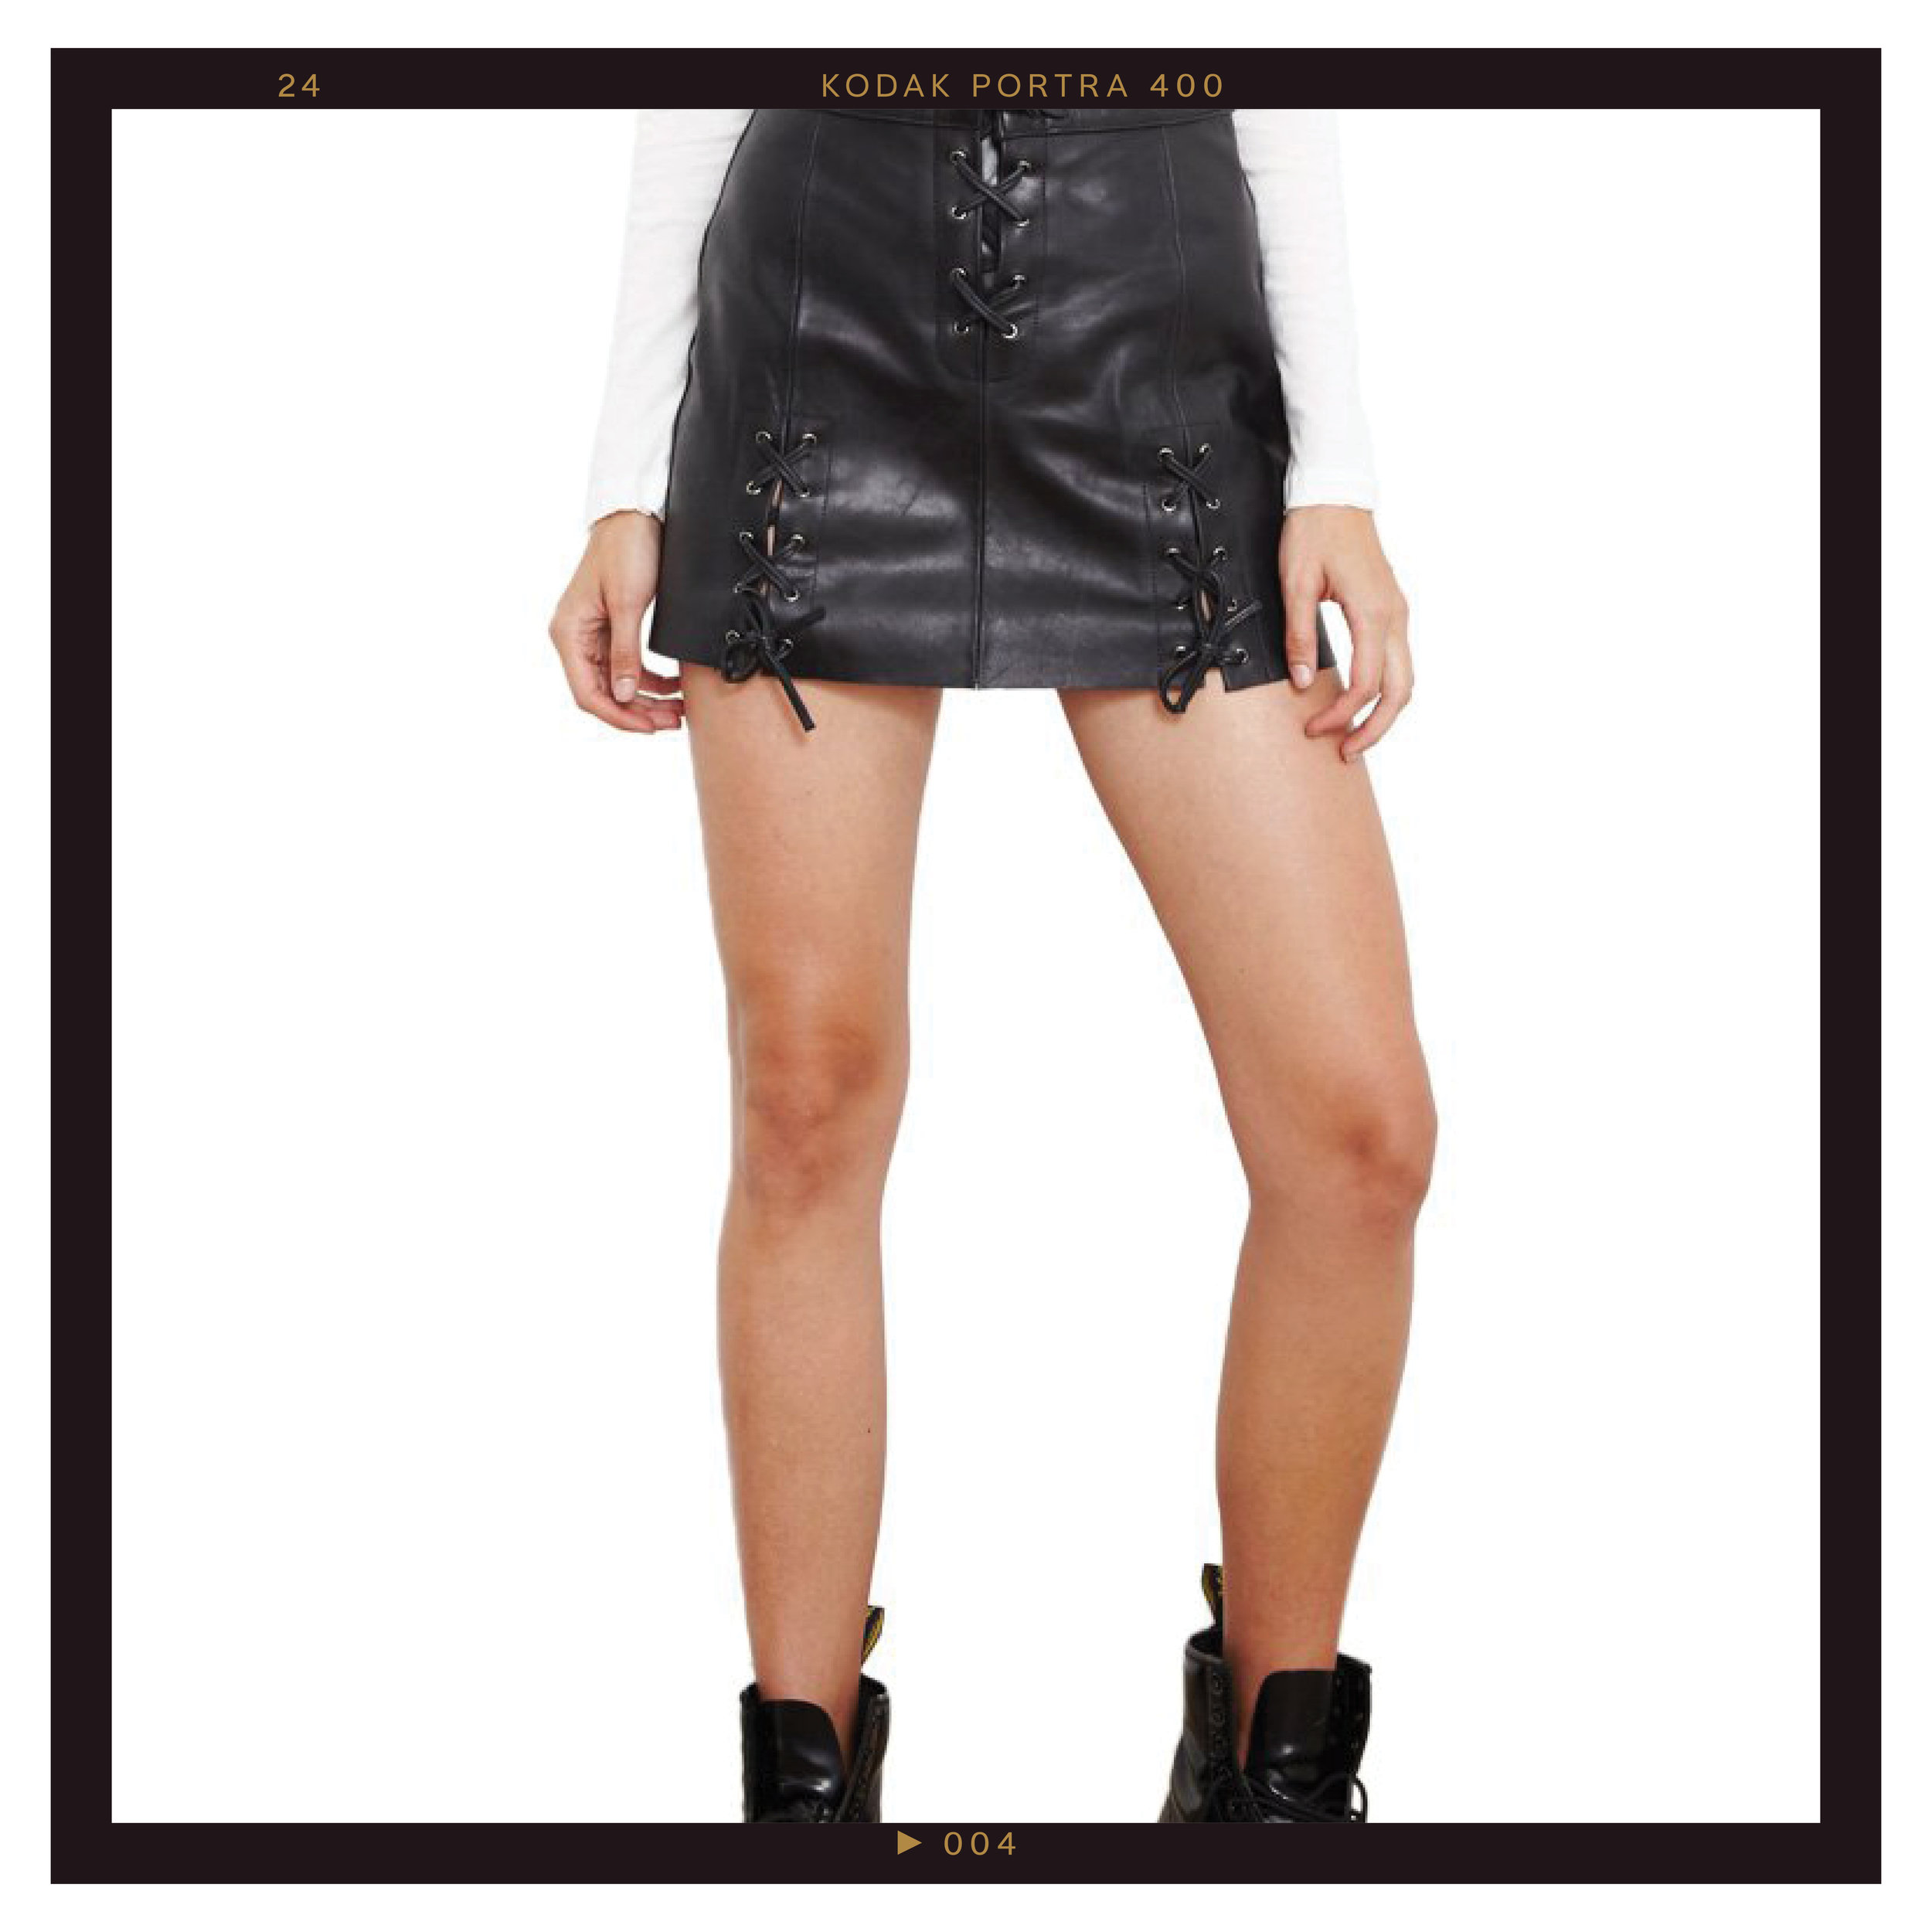 Milani Leather Skirt, $200